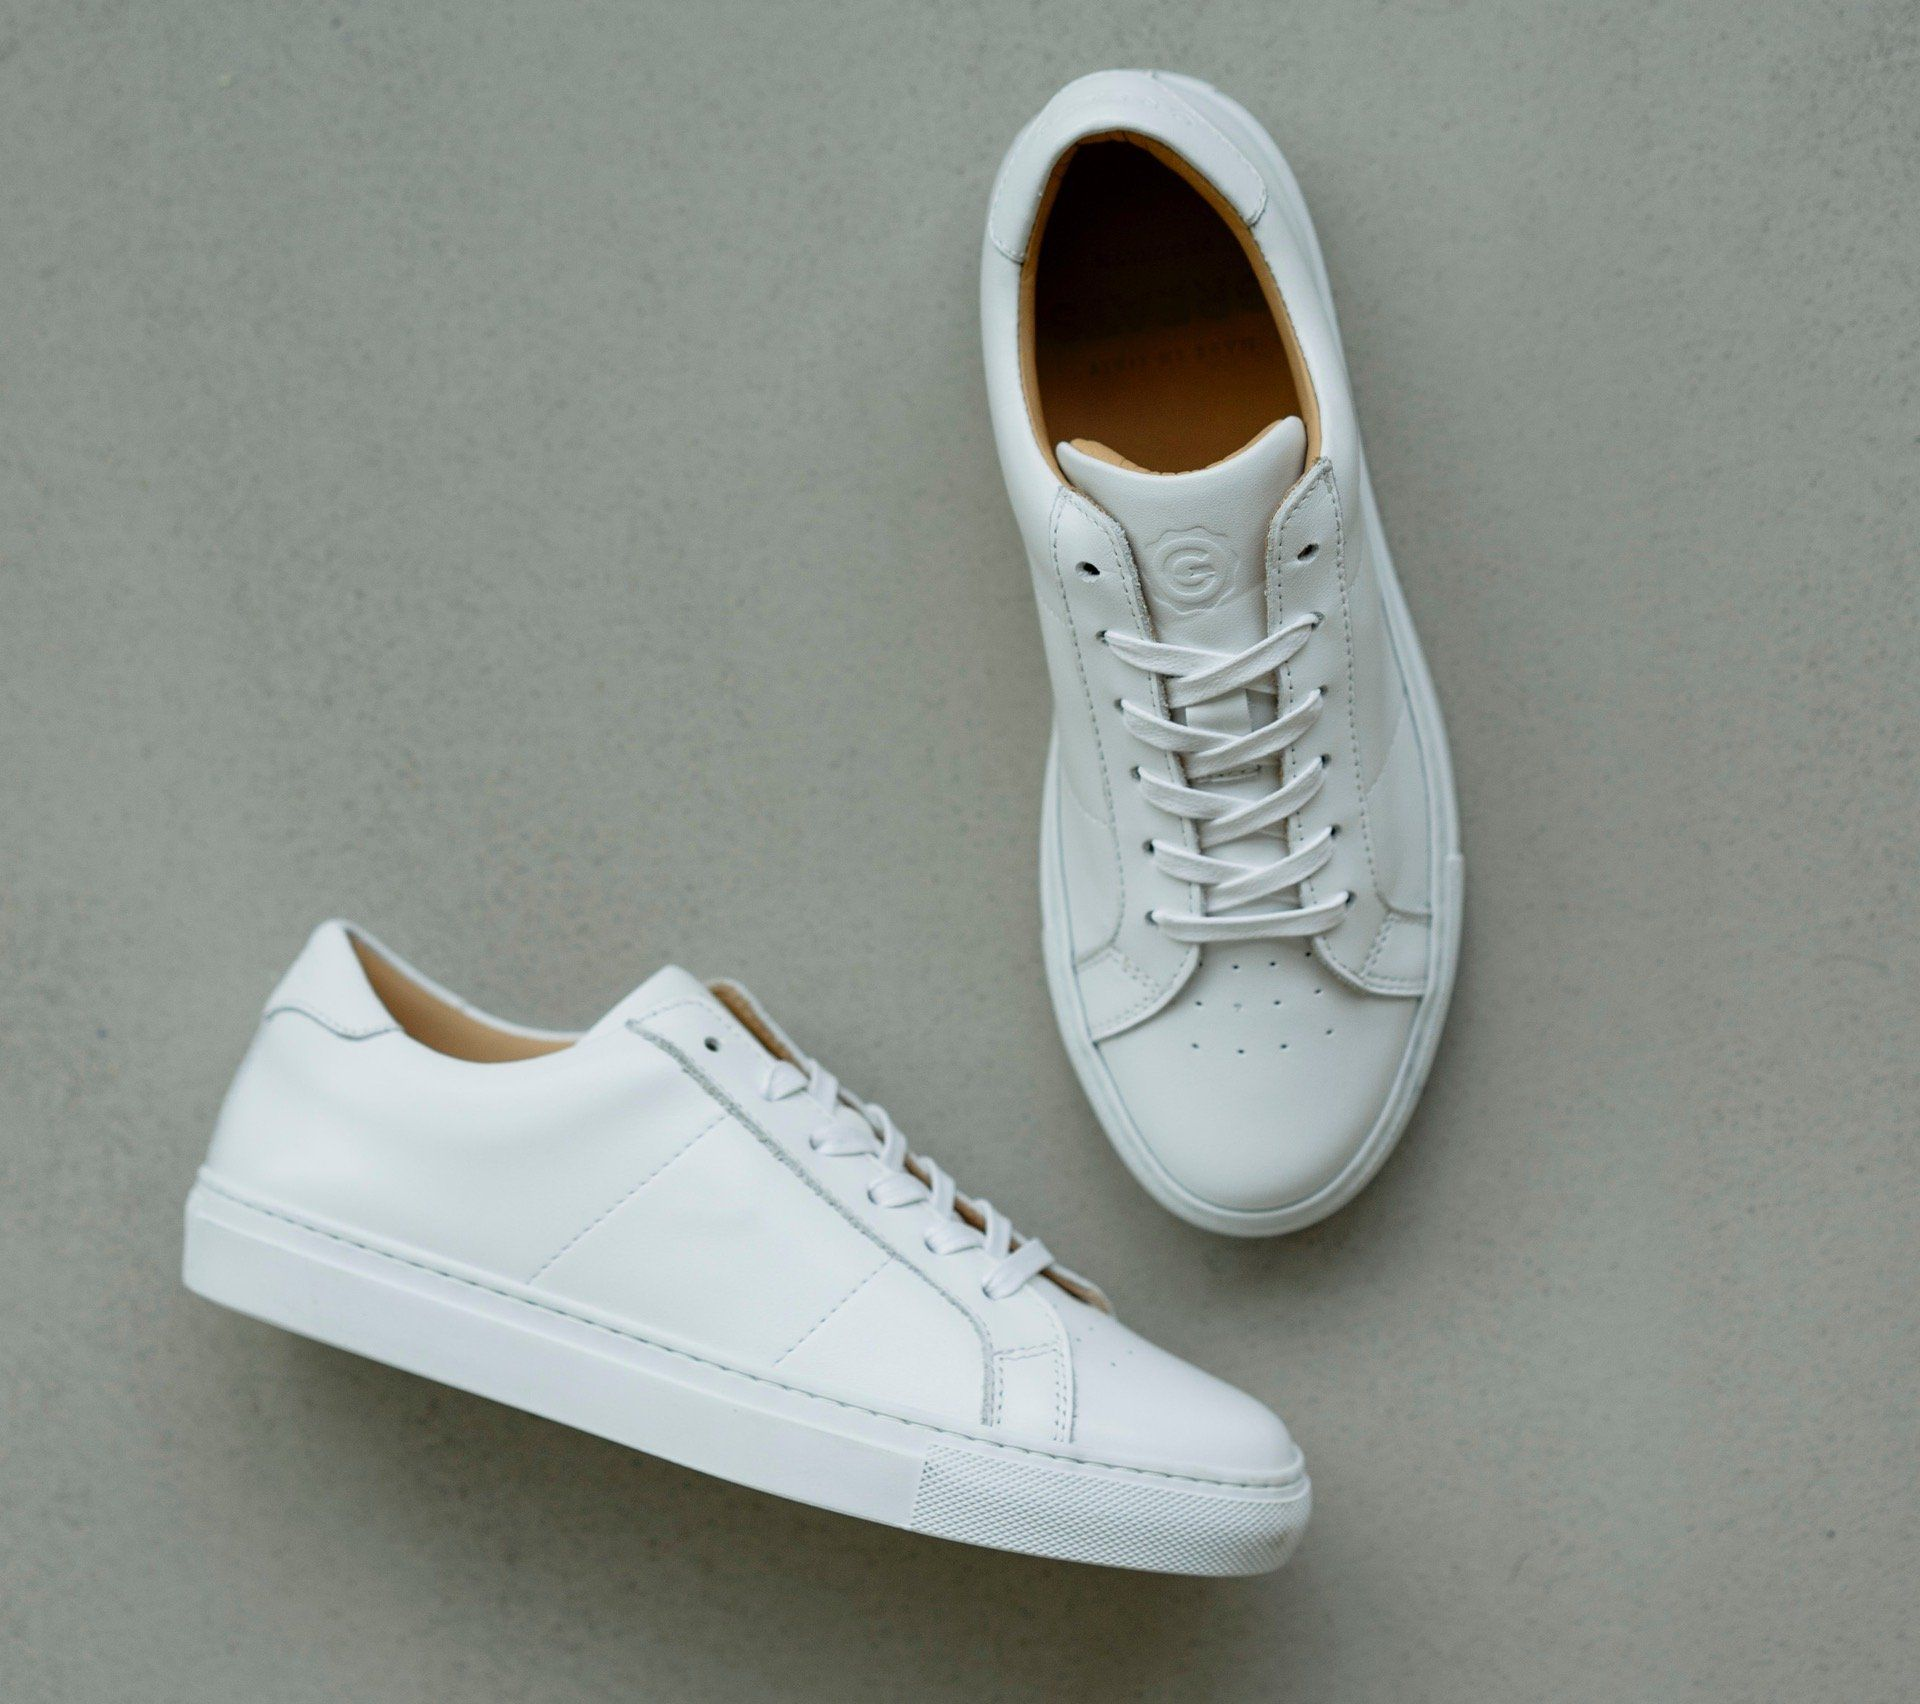 White leather tennis shoes